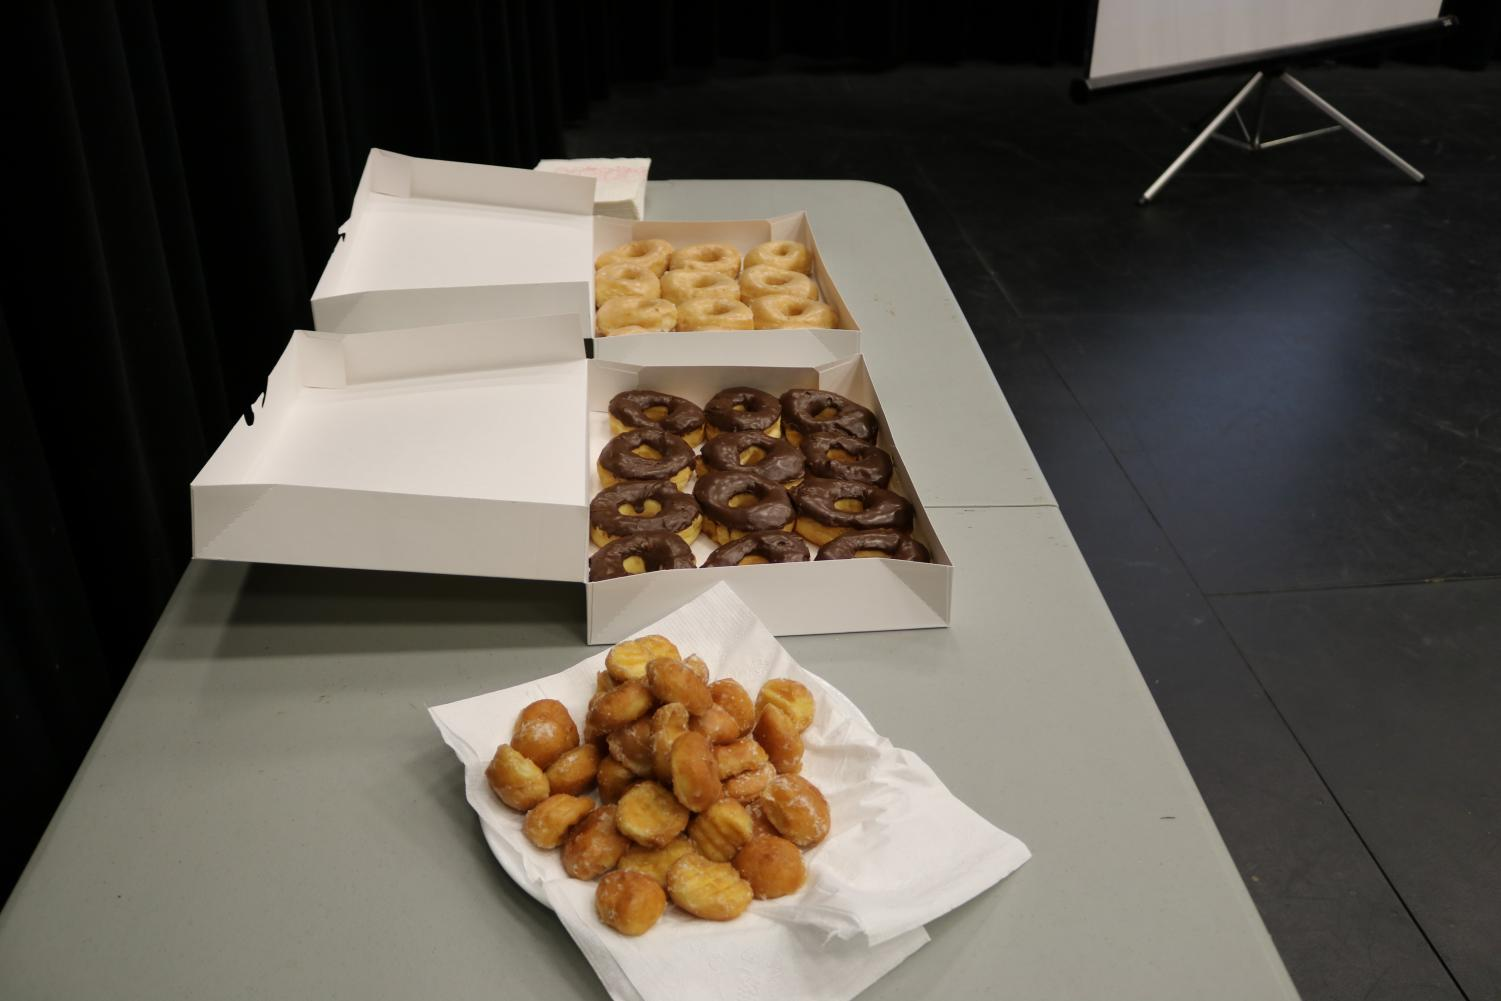 Doughnuts+were+set+out+for+students+to+eat+at+the+end+of+the+panel.